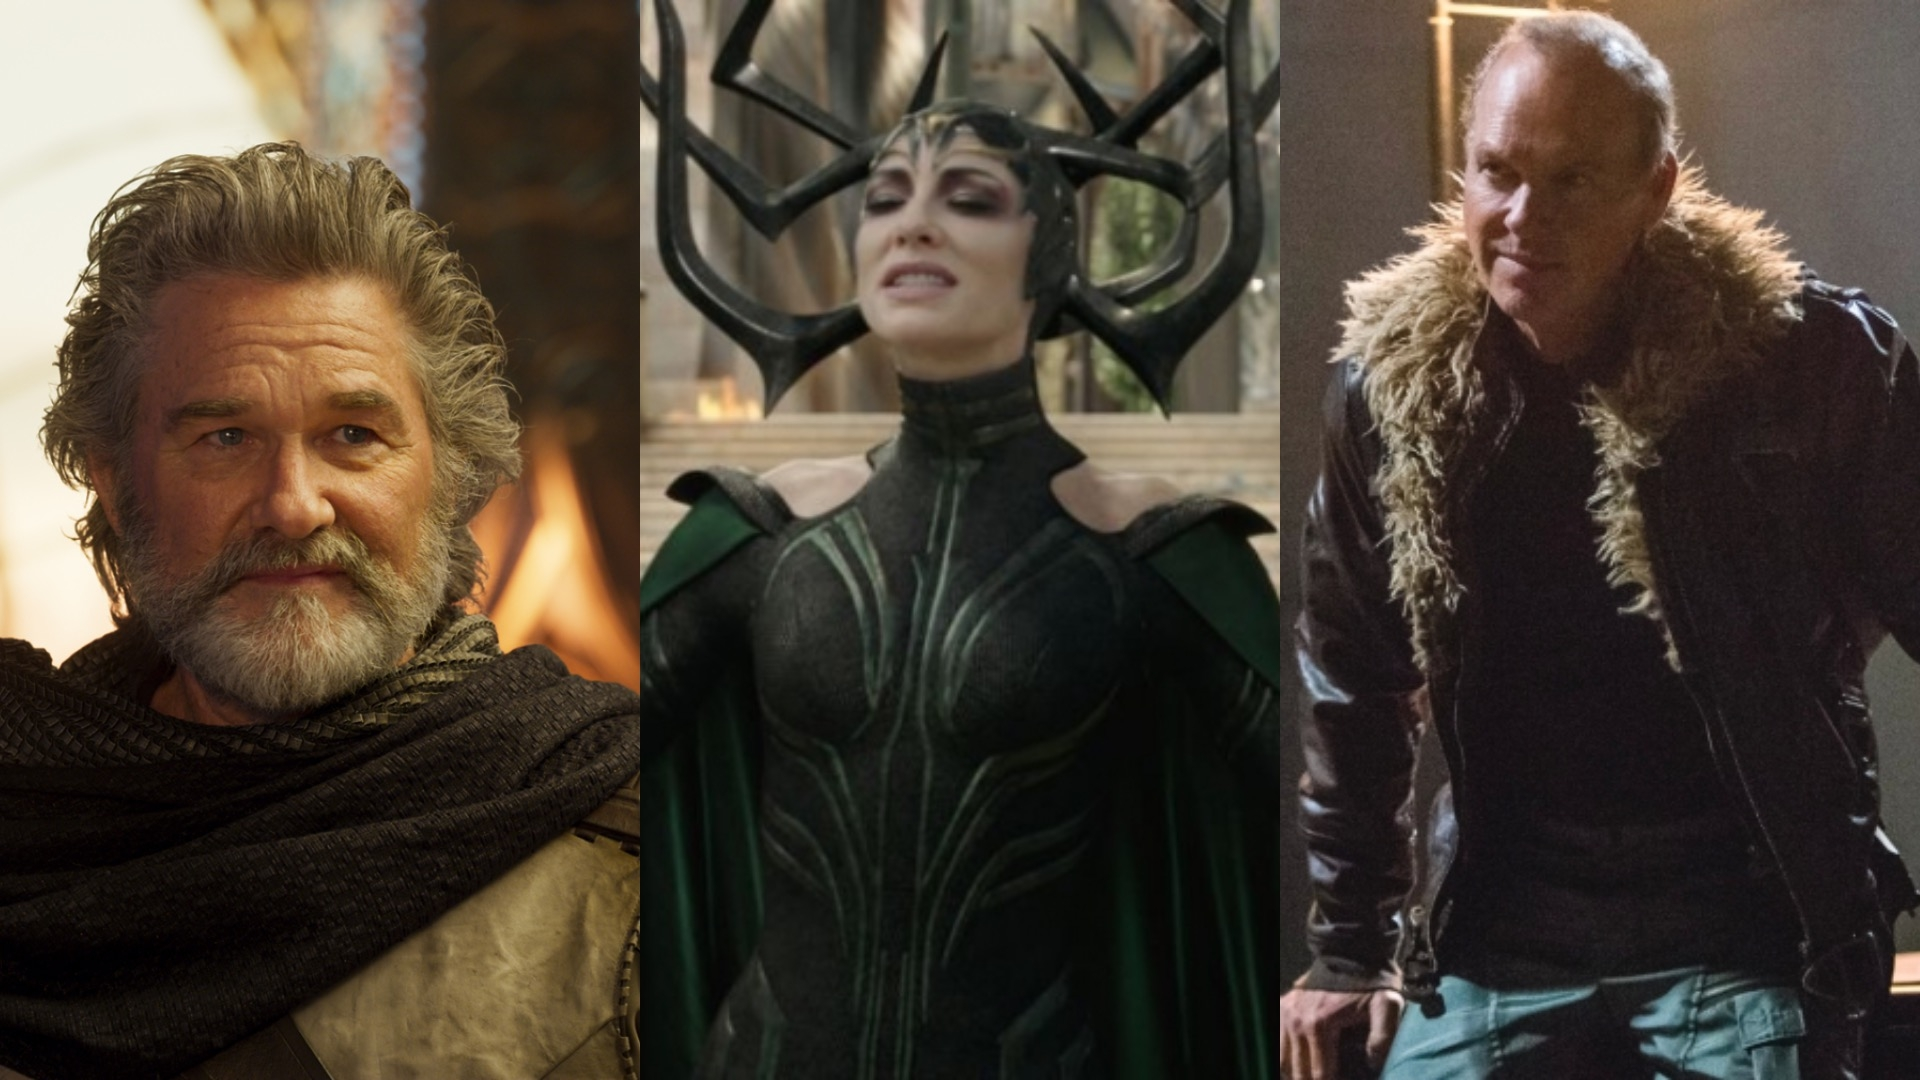 Kurt Russell as Ego in Guardians of the Galaxy Vol. 2, Cate Blanchett as Hela in Thor: Ragnarok, Michael Keaton as Vulture in Spider-Man: Homecoming